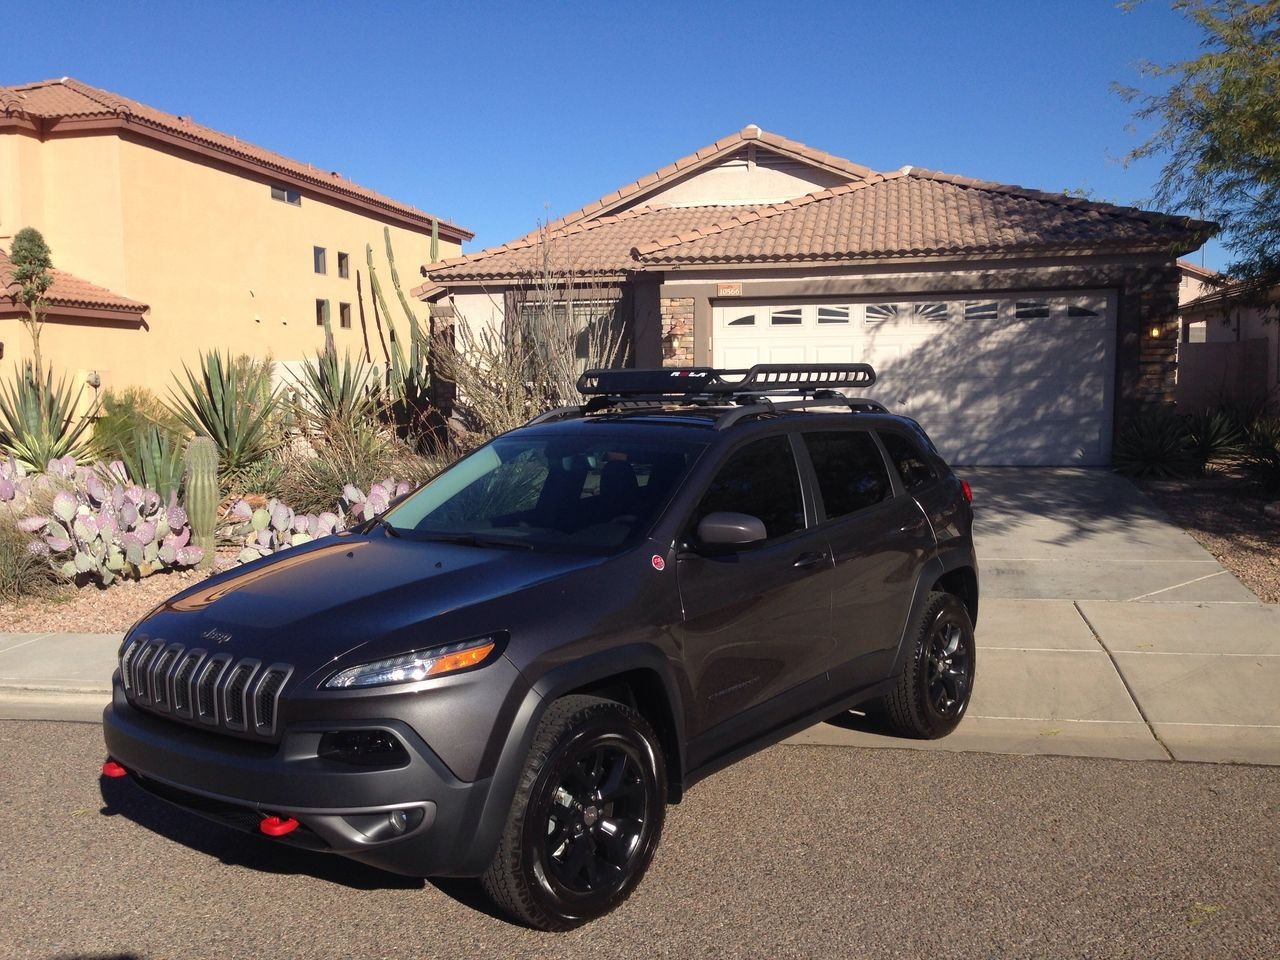 Roof Racks Baskets Spot Lights Page 6 2014 2015 Jeep Cherokee Forums Jeep Trailhawk Jeep Cherokee Sport Jeep Cherokee Trailhawk